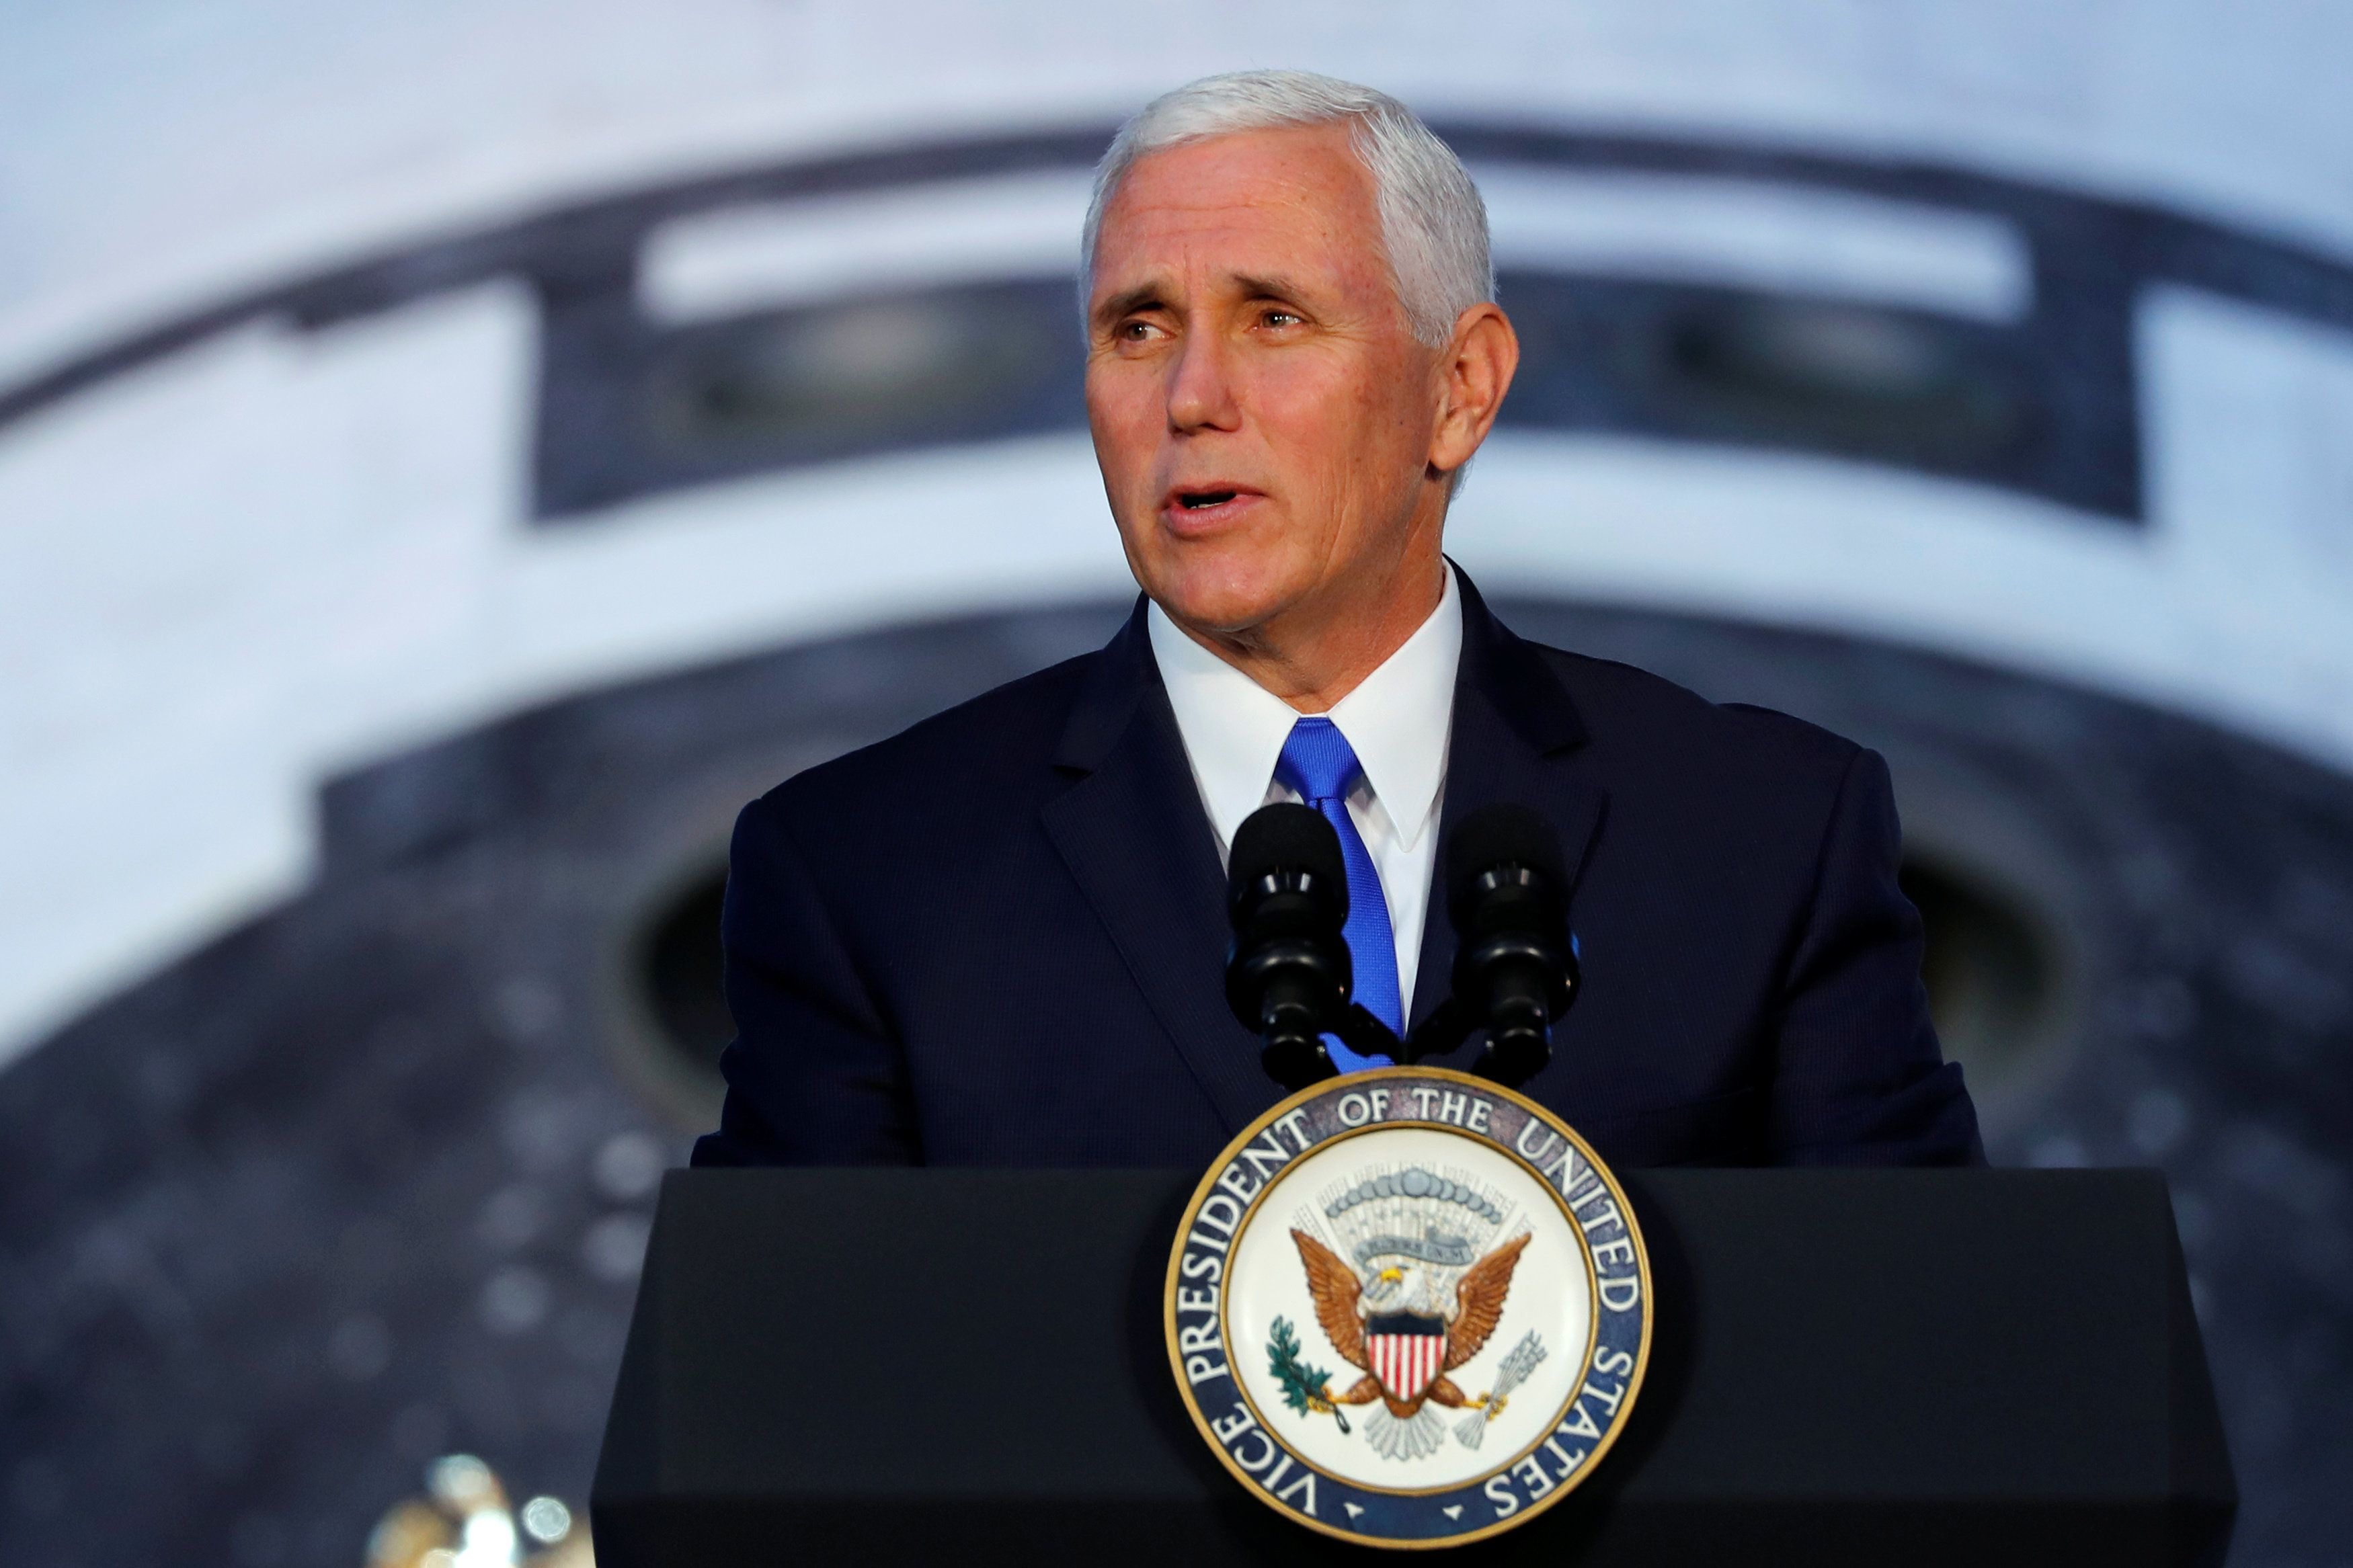 In the shadow of the Space Shuttle Discovery, U.S. ?Vice President Mike Pence? delivers remarks before convening the first meeting of National Space Council at the National Air and Space Museum's Udvar-Hazy Center in Chantilly, Virginia, U.S., October 5, 2017.  REUTERS/Jonathan Ernst